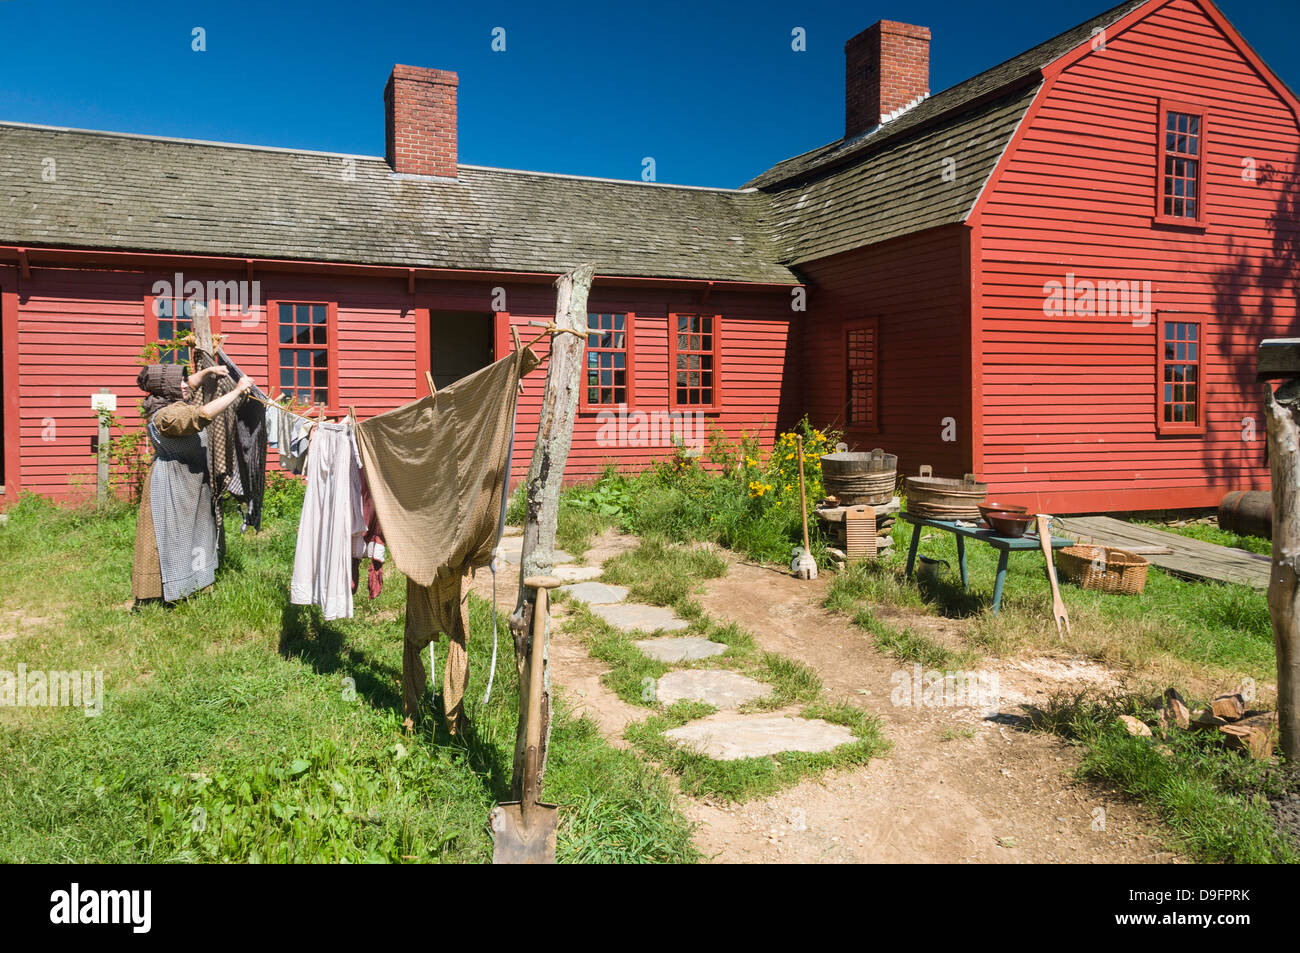 Recreating past times at Old Sturbridge Village, a museum depicting early New England life, Massachusetts, New England, - Stock Image